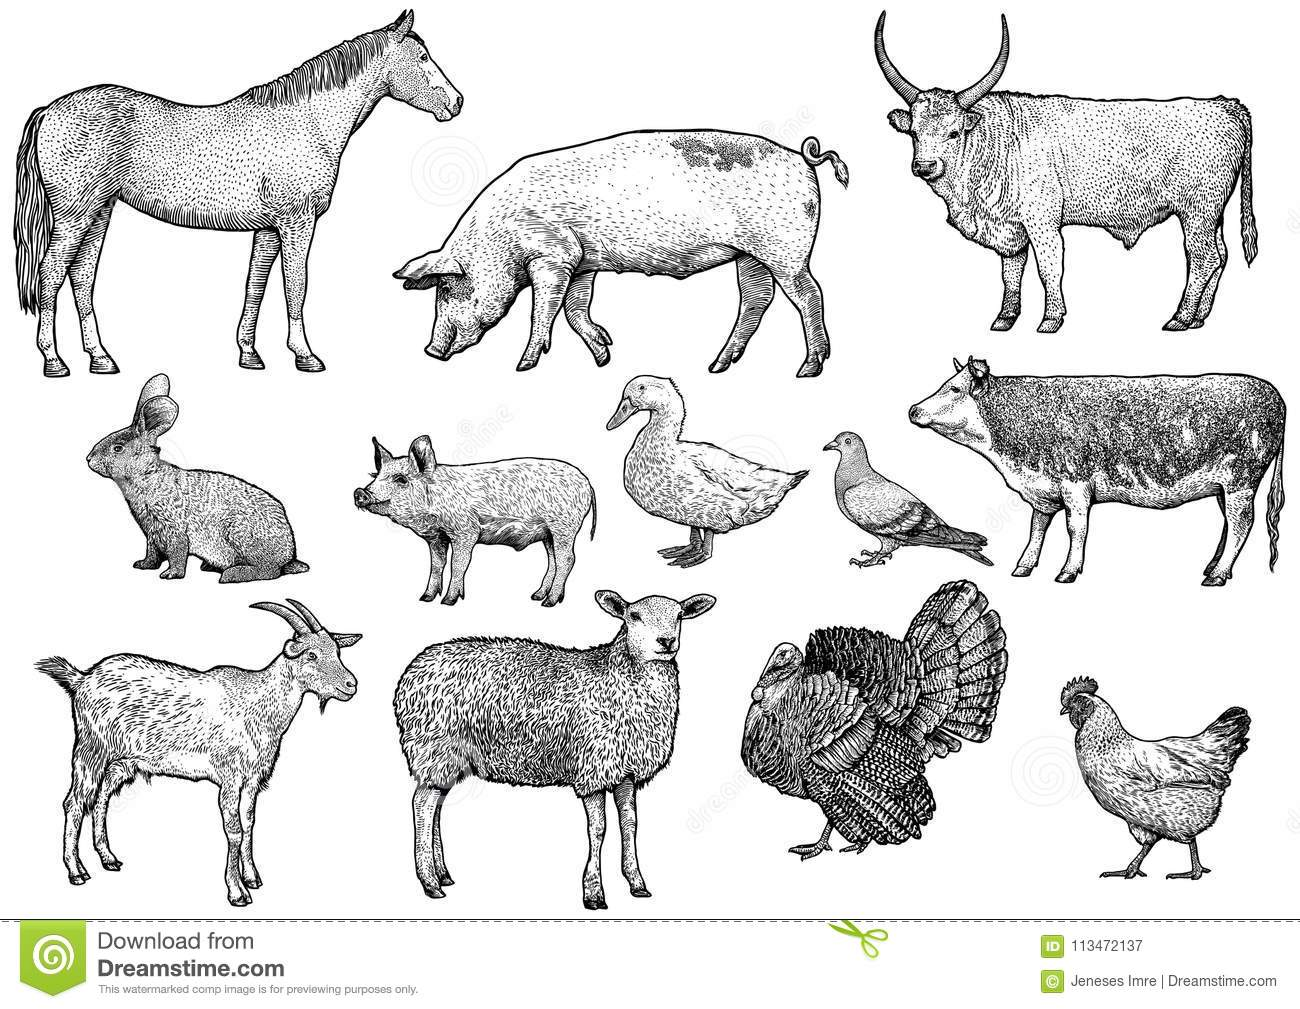 Image of: Vintage Farm Animals Illustration Drawing Engraving Line Art Realistic Vector Dreamstimecom Farm Animals Illustration Drawing Engraving Line Art Realistic